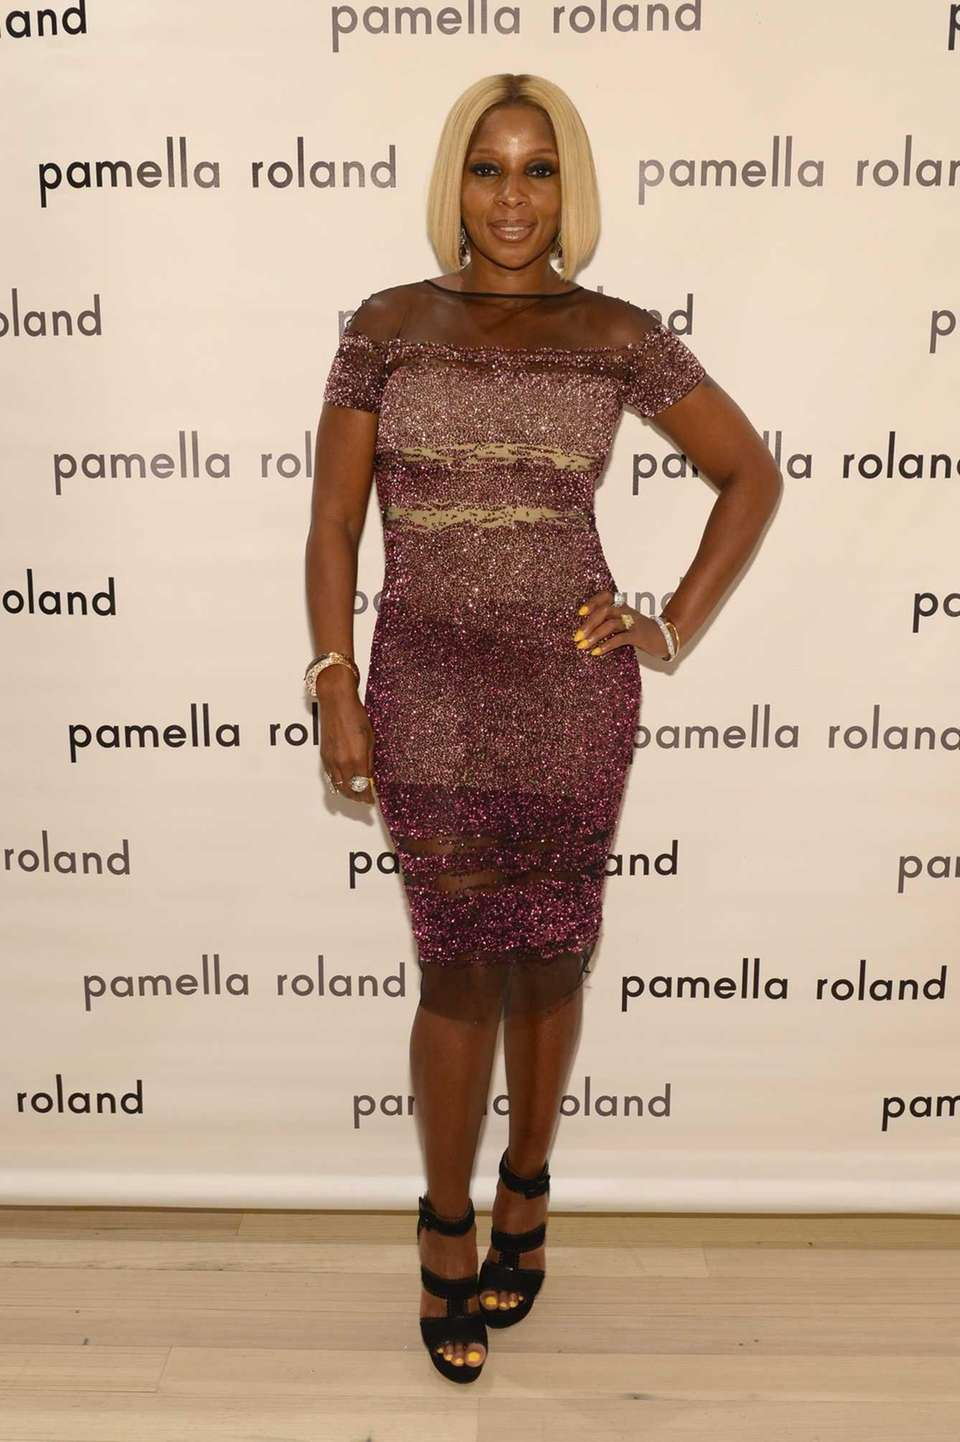 Mary J. Blige poses backstage at the Pamella